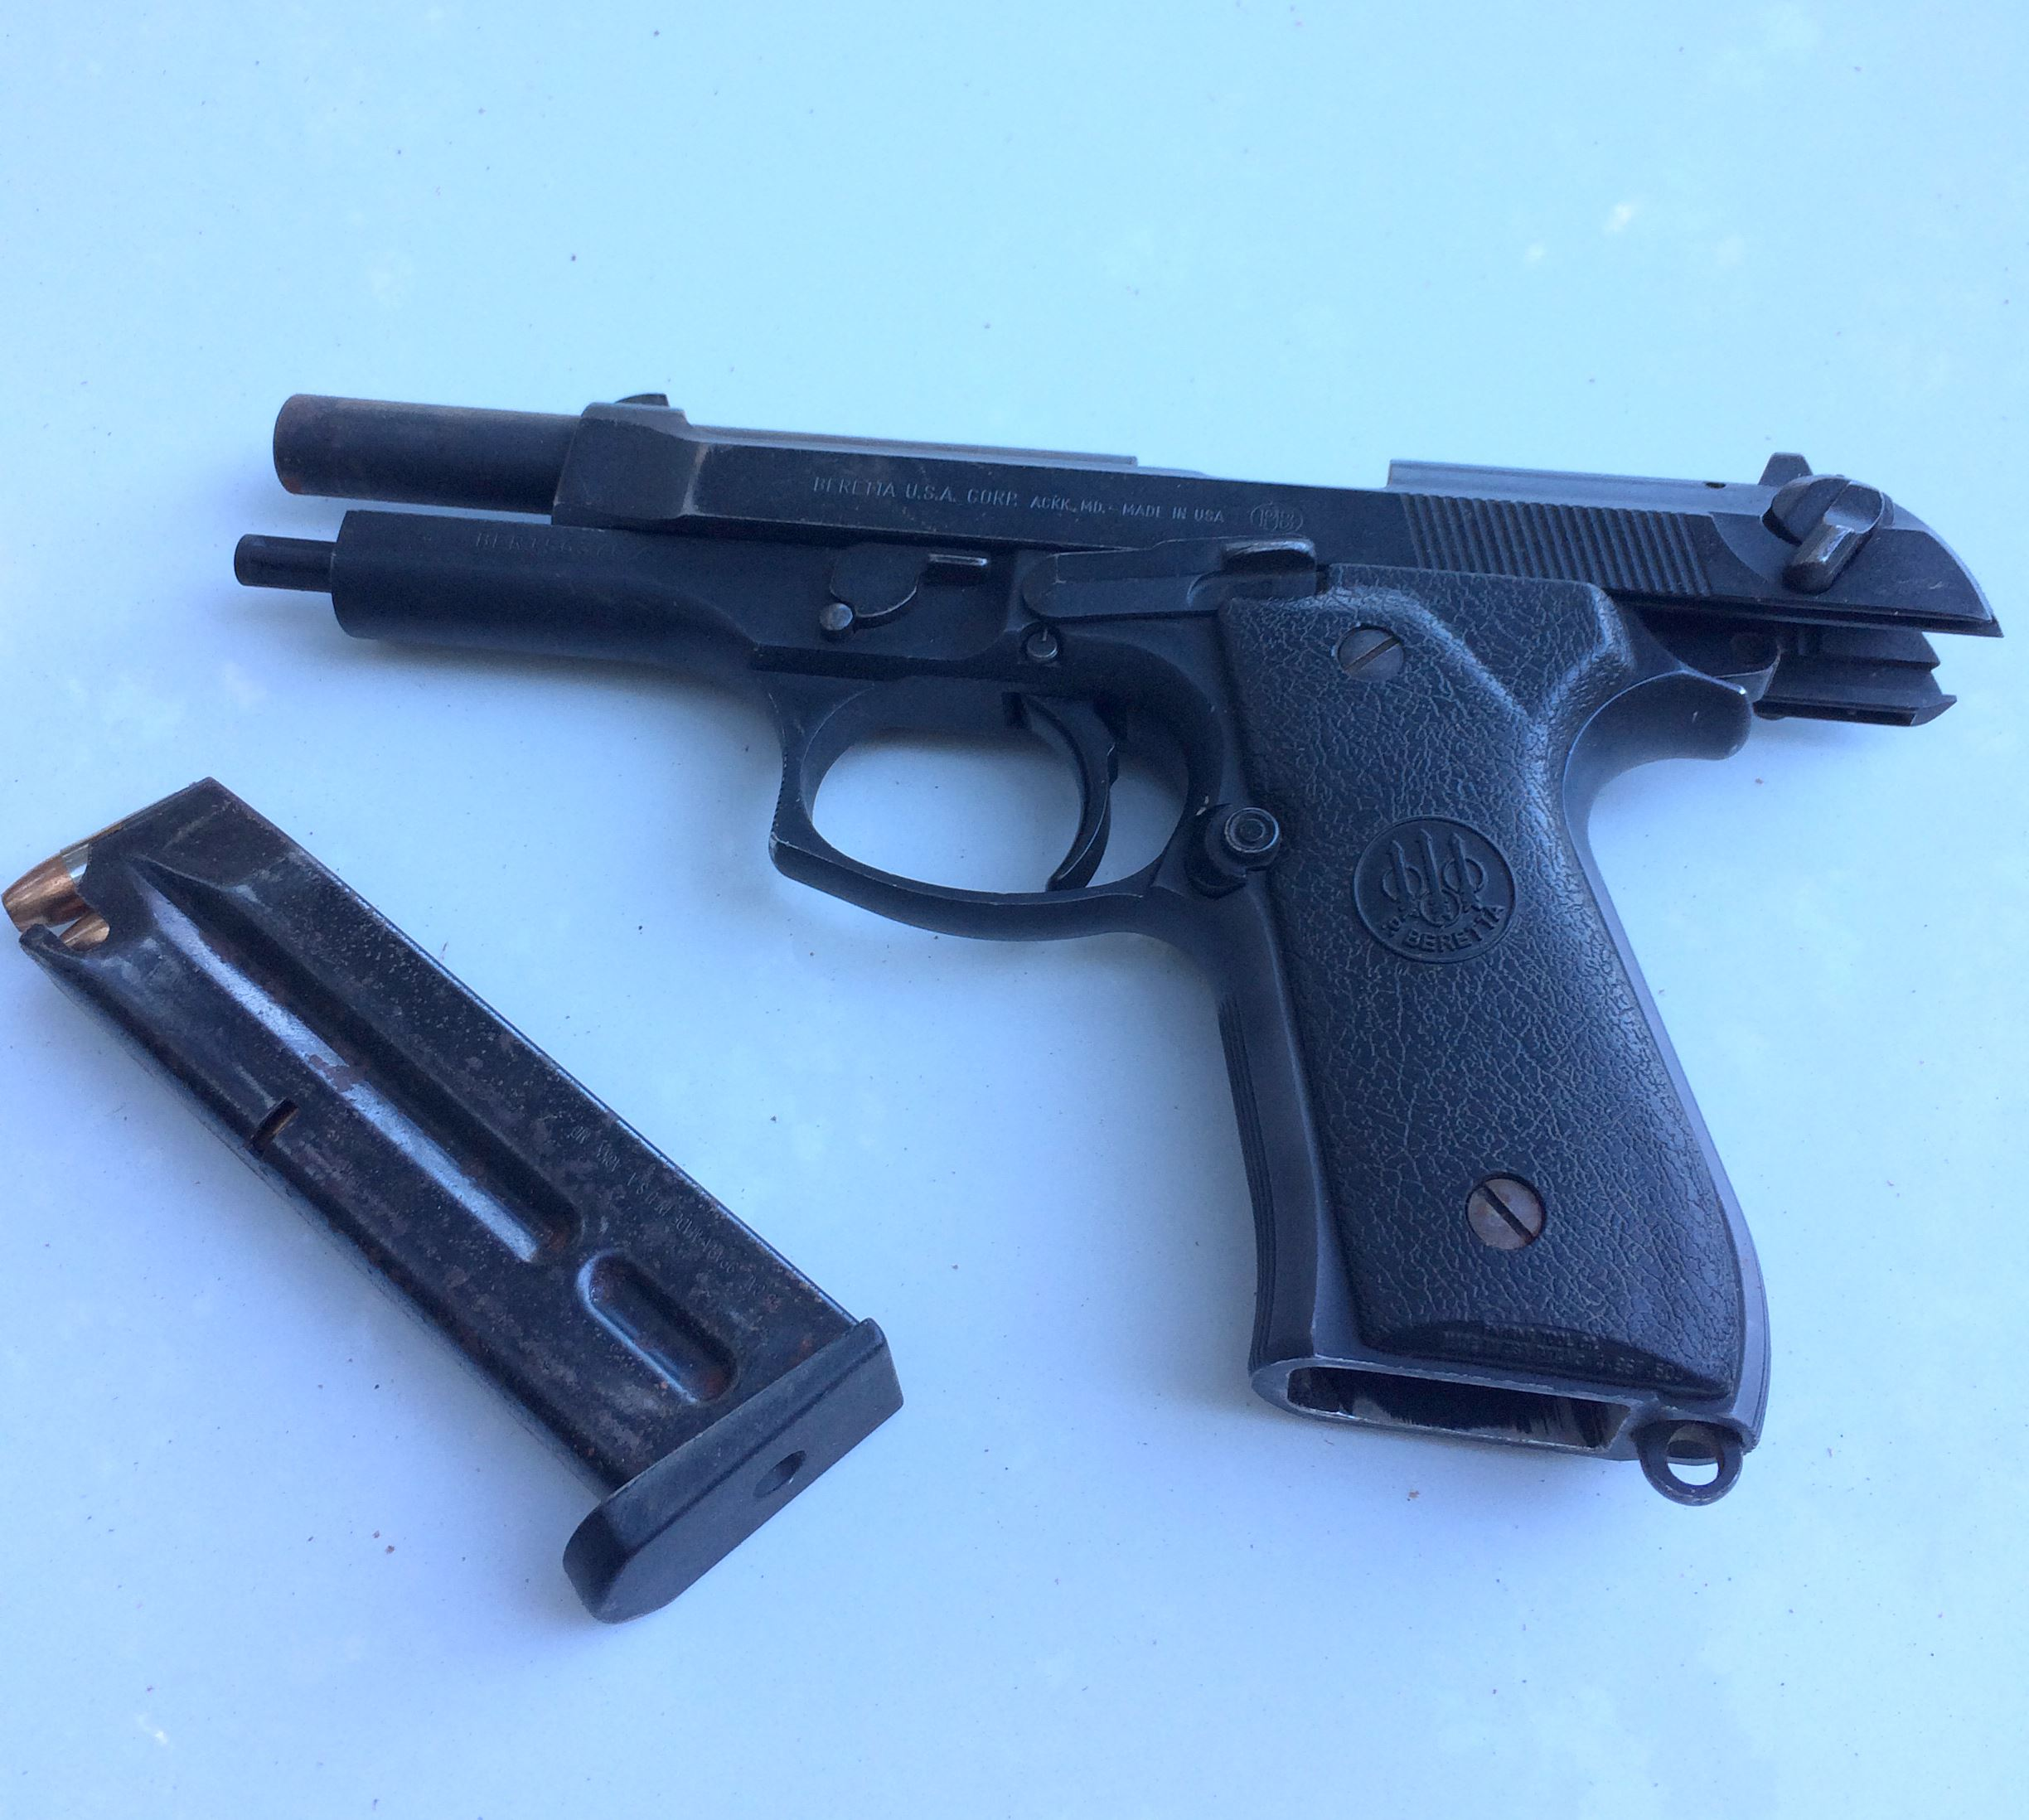 Firearm found during the Rancho Sequoia search warrant.